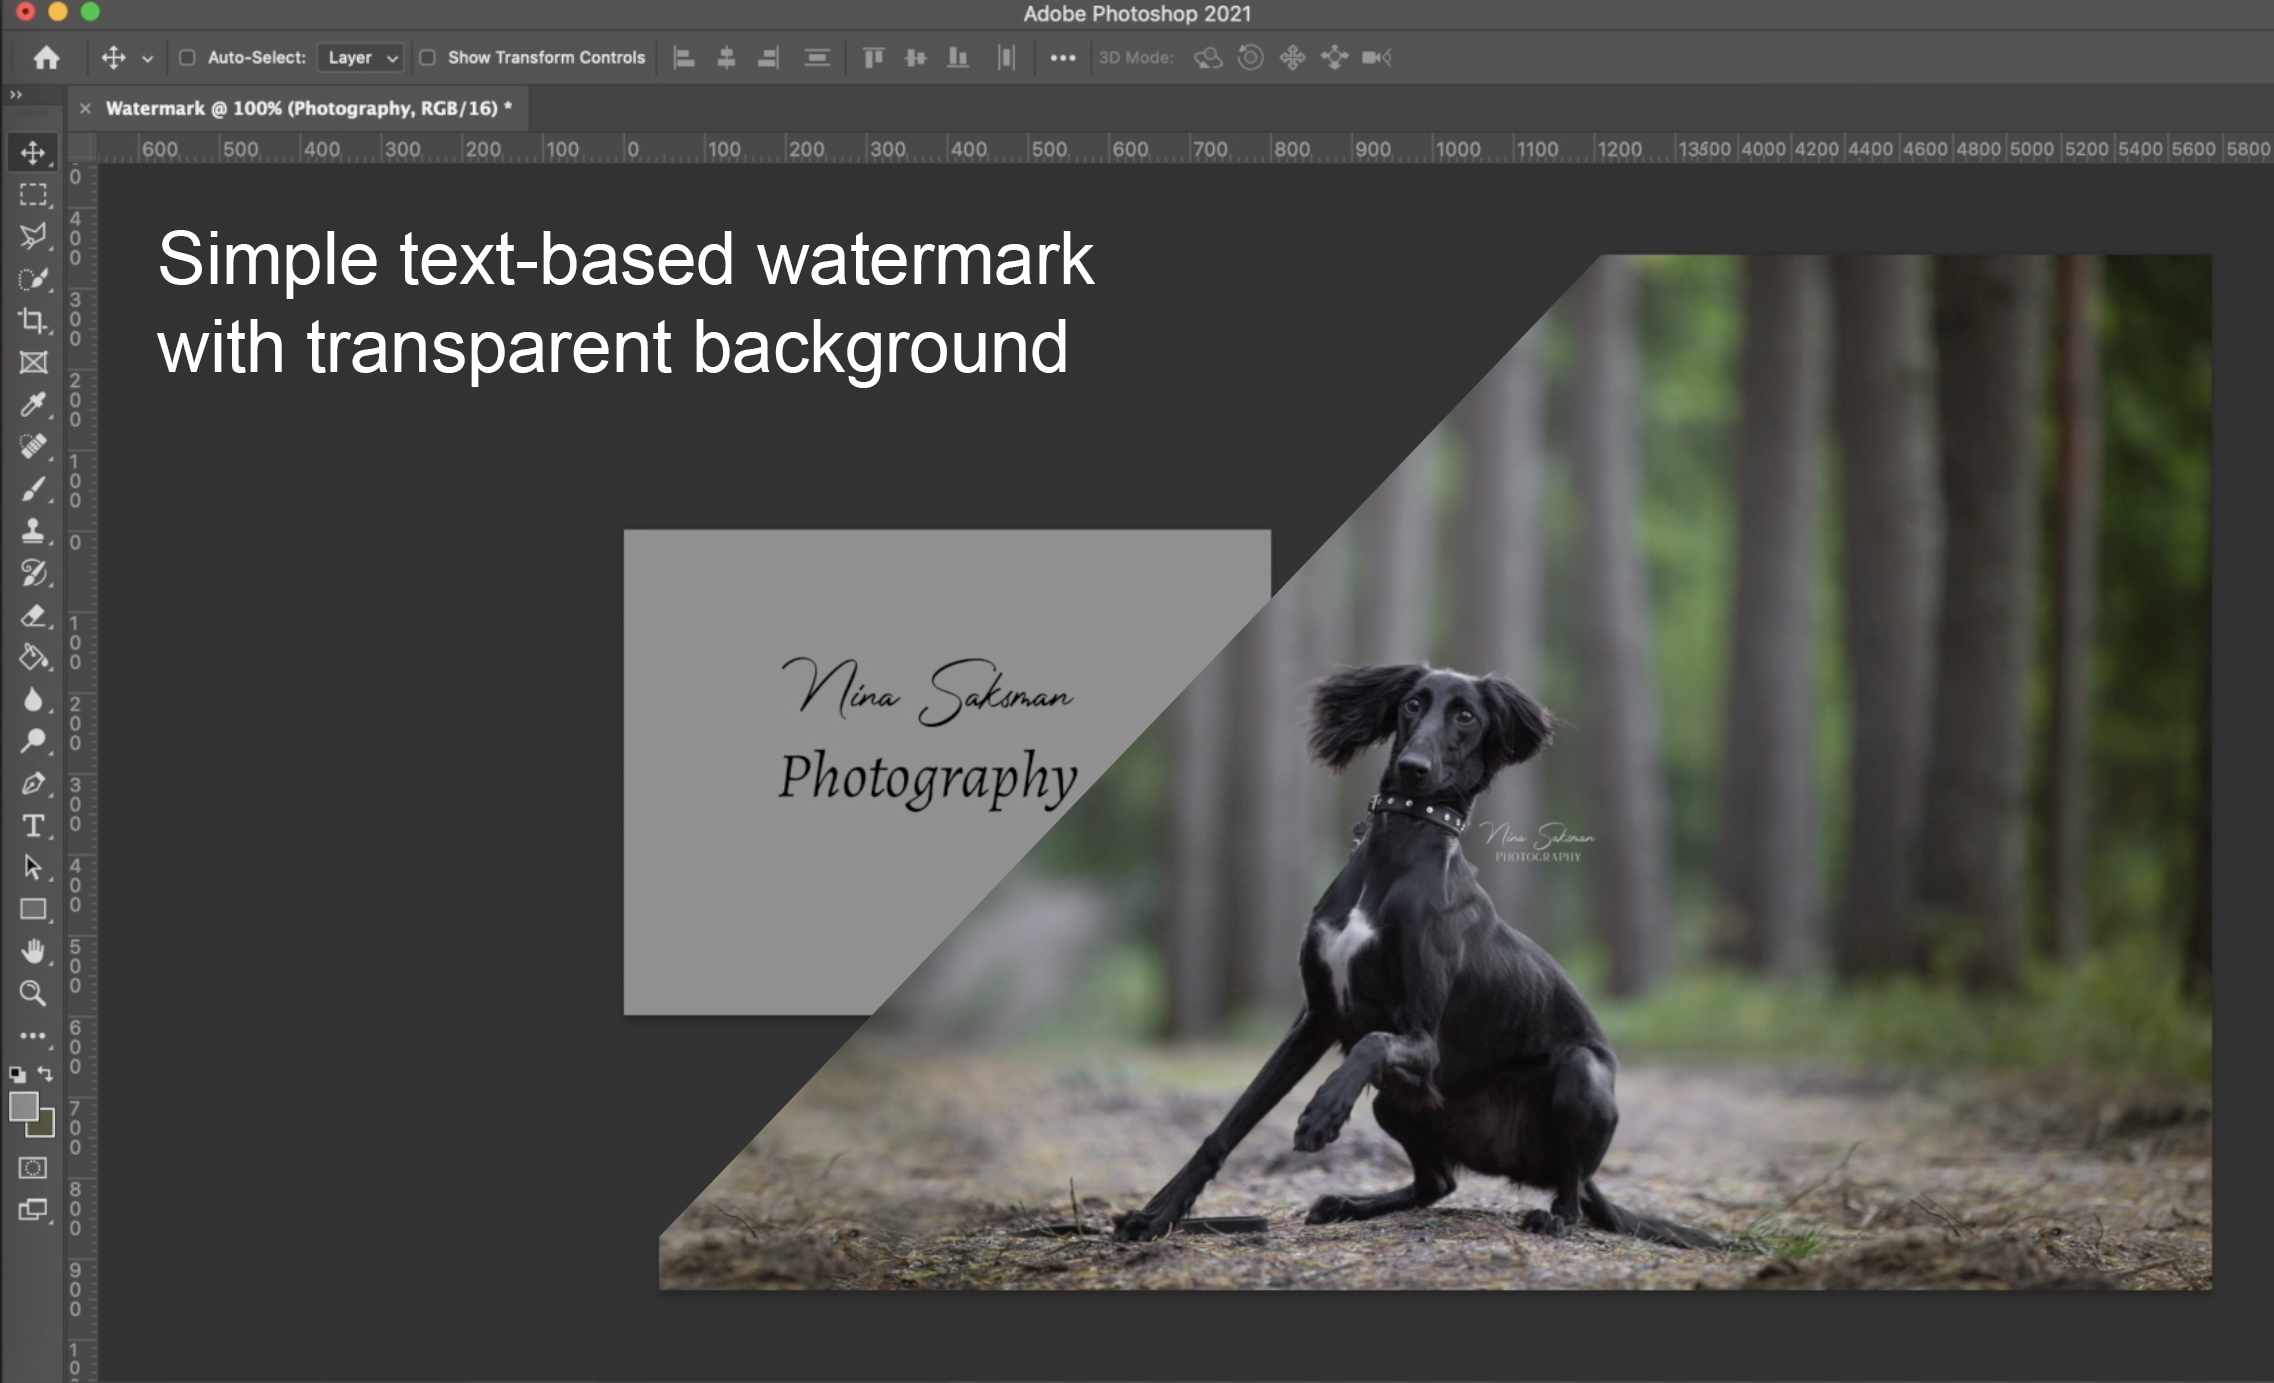 Simple text-based watermark tutorial (Adobe Photoshop CC required)